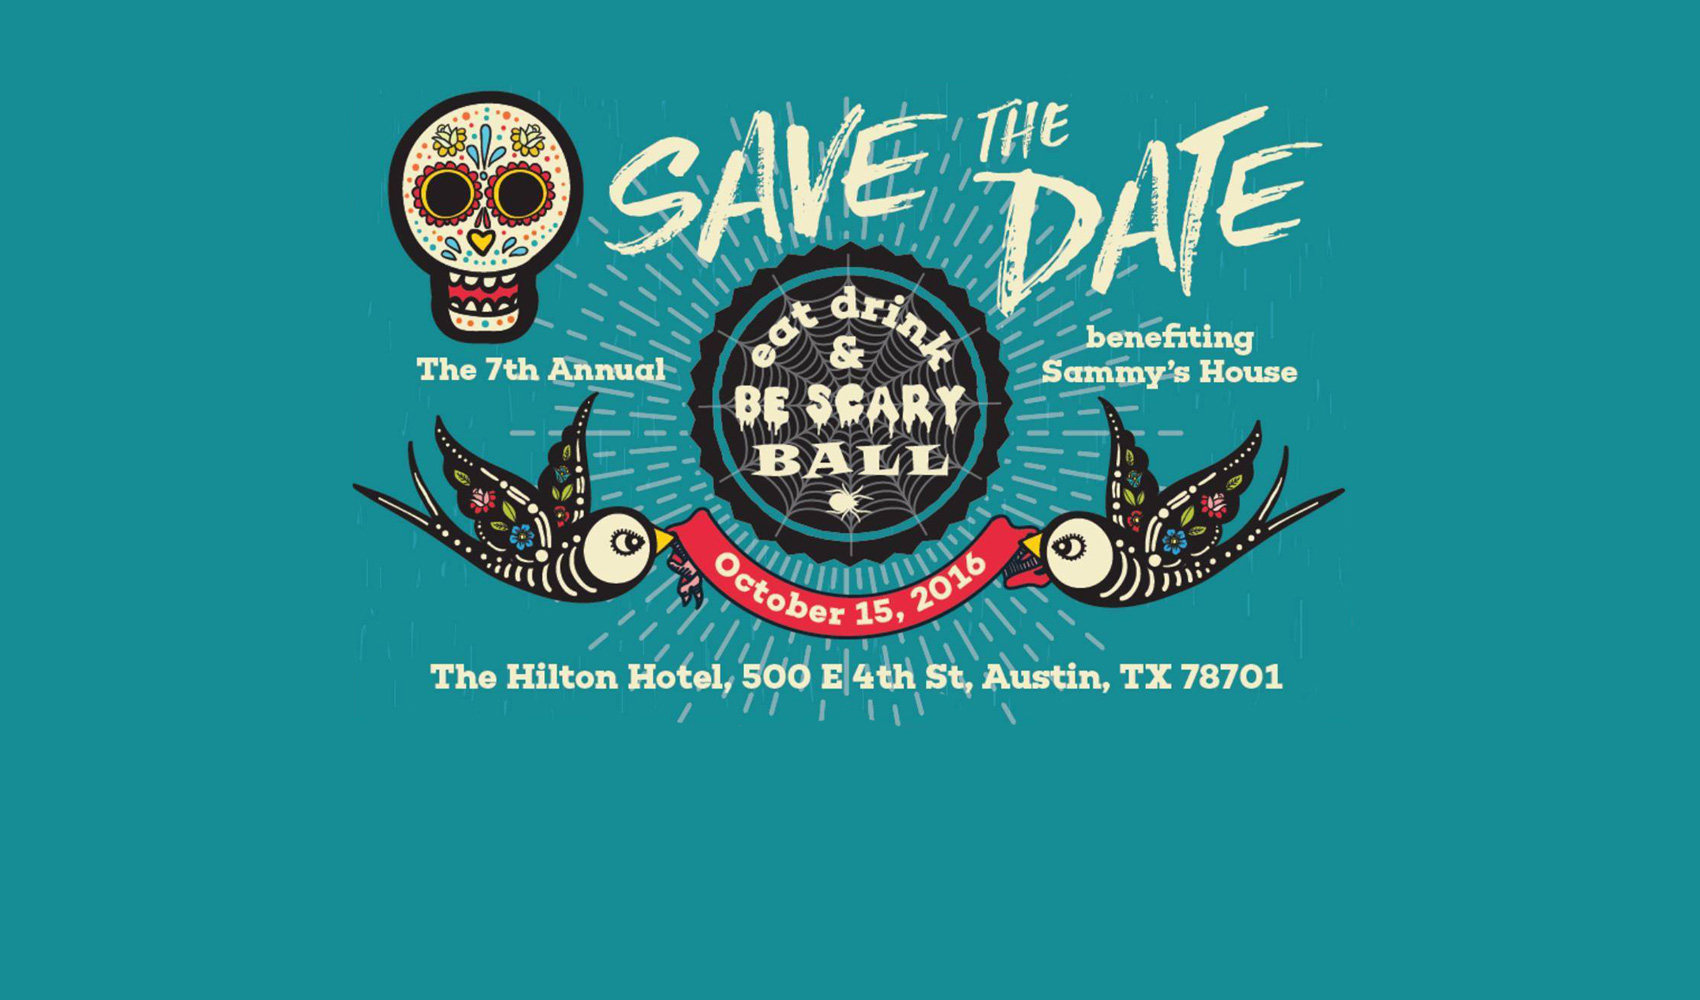 2016-Save-the-Date-2